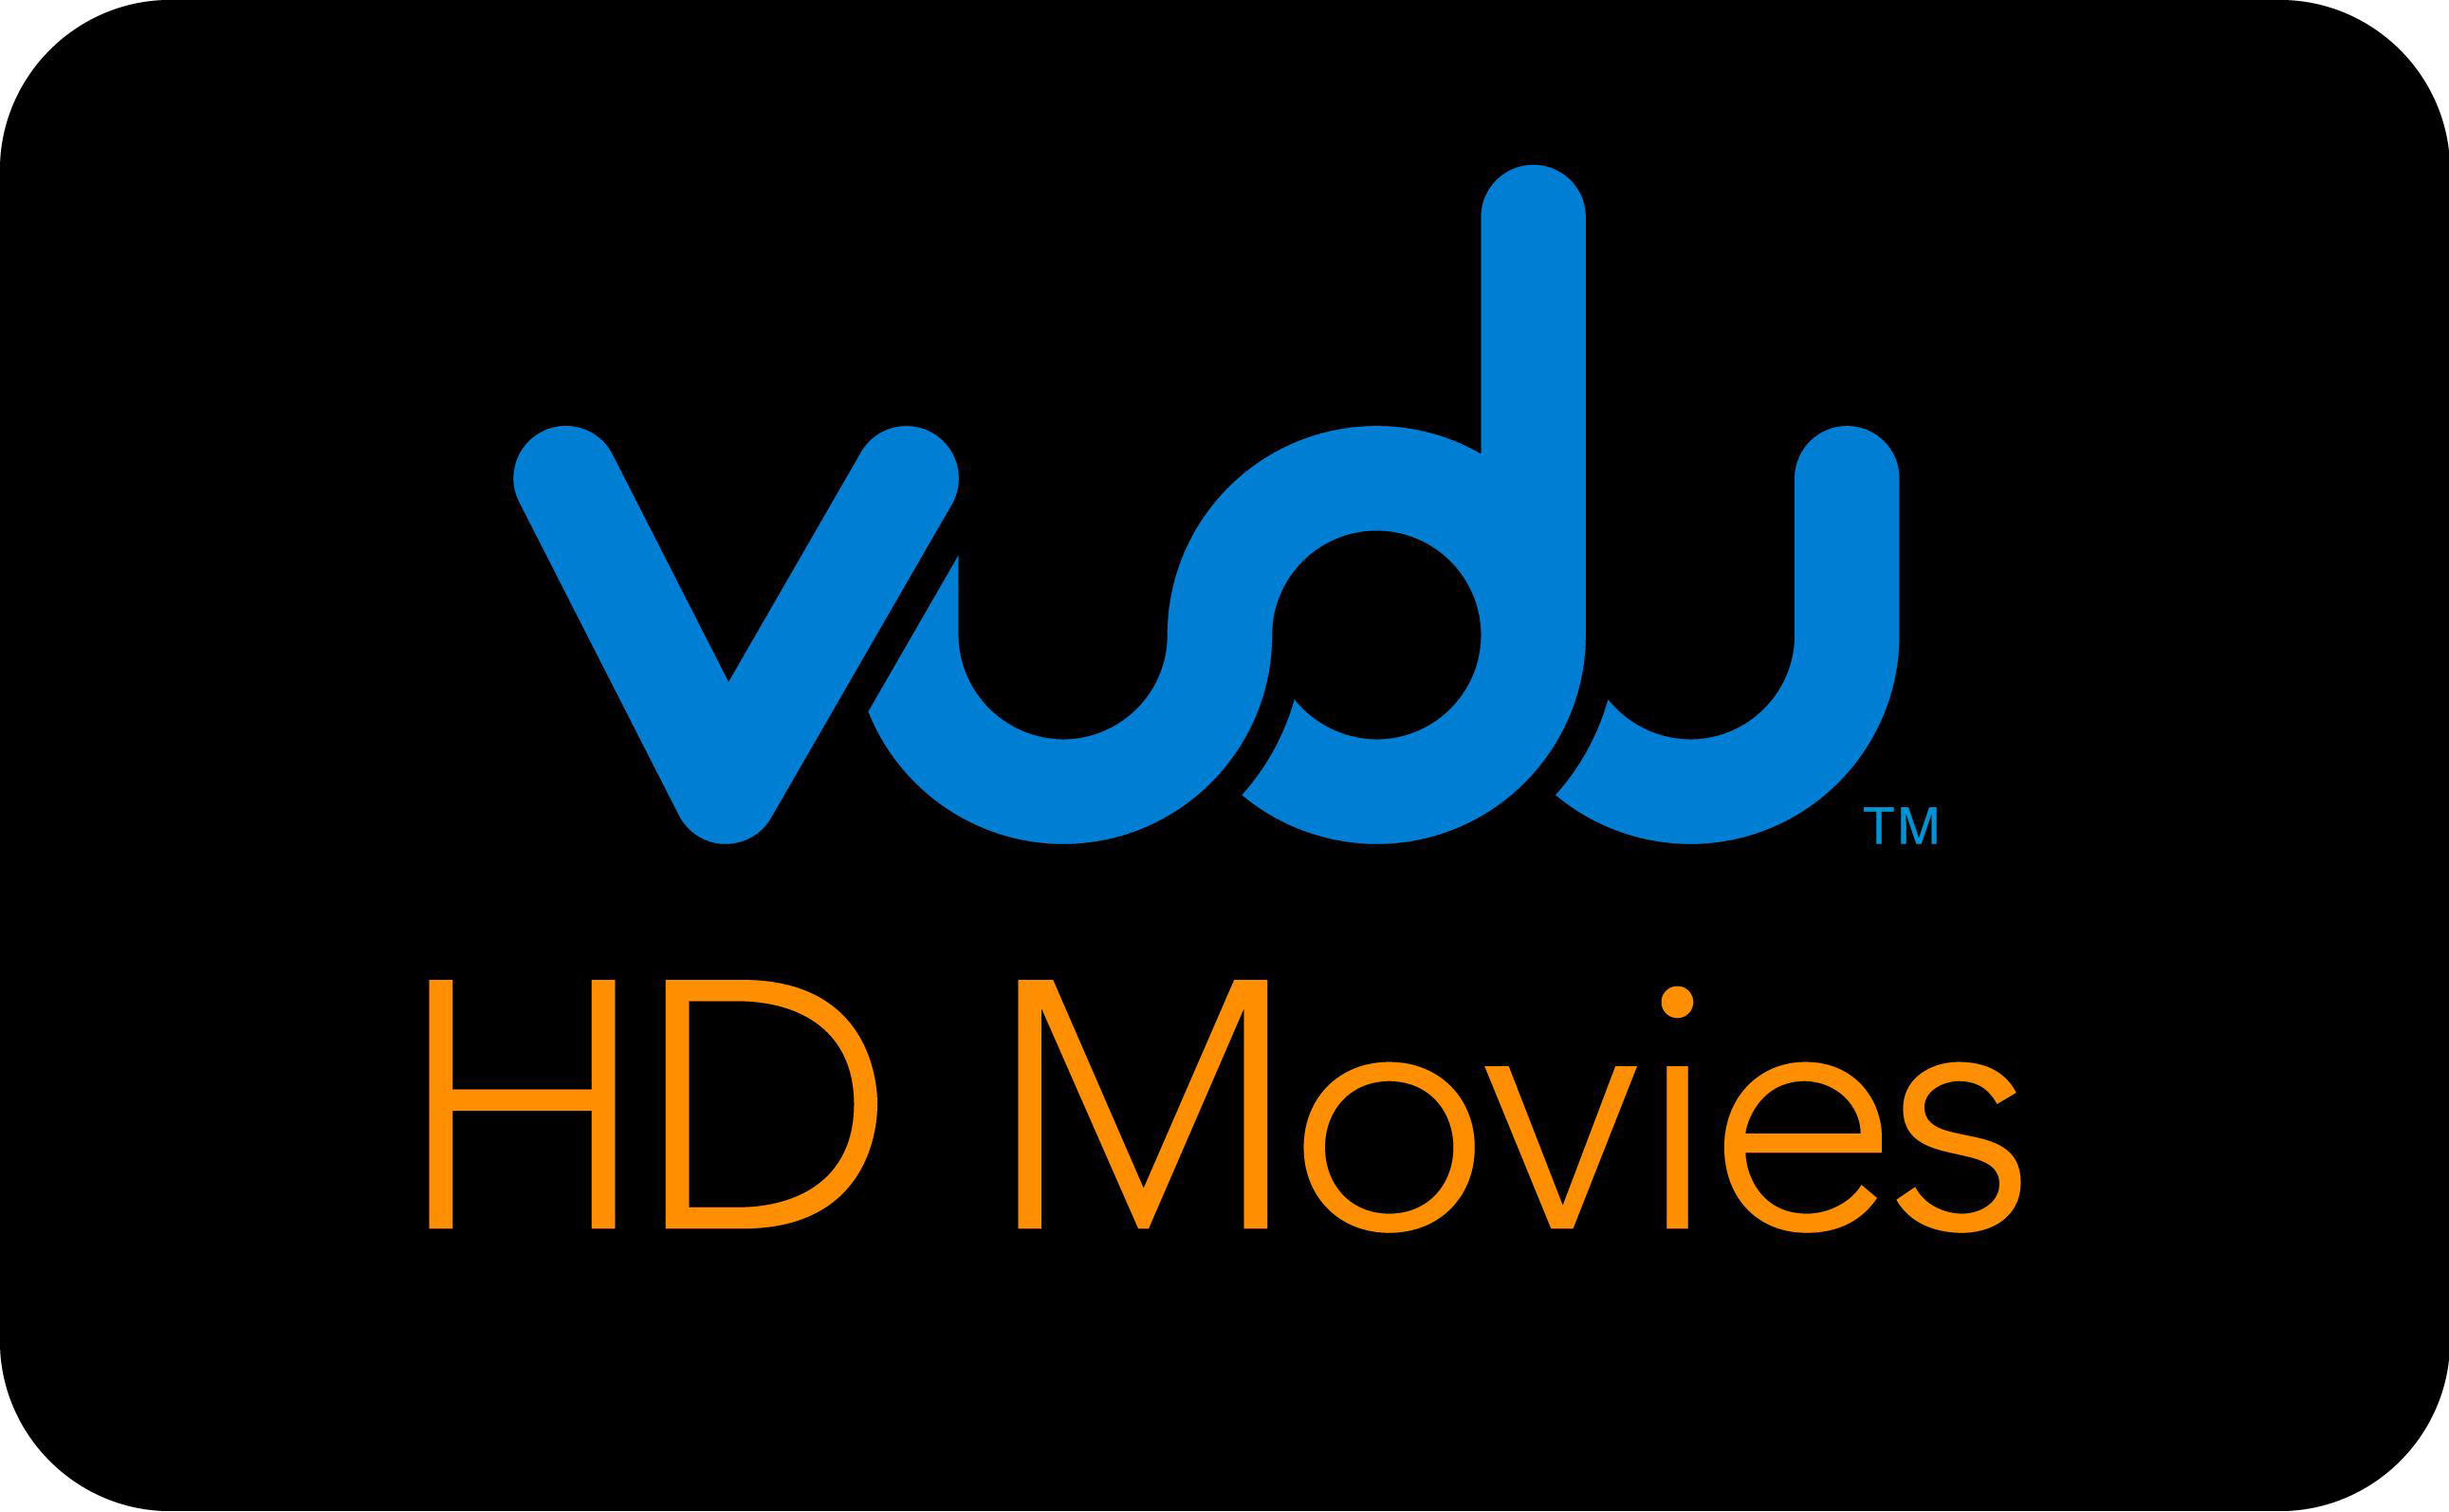 A new Vudu update turns a Spotlight on best movie deals, free content and more